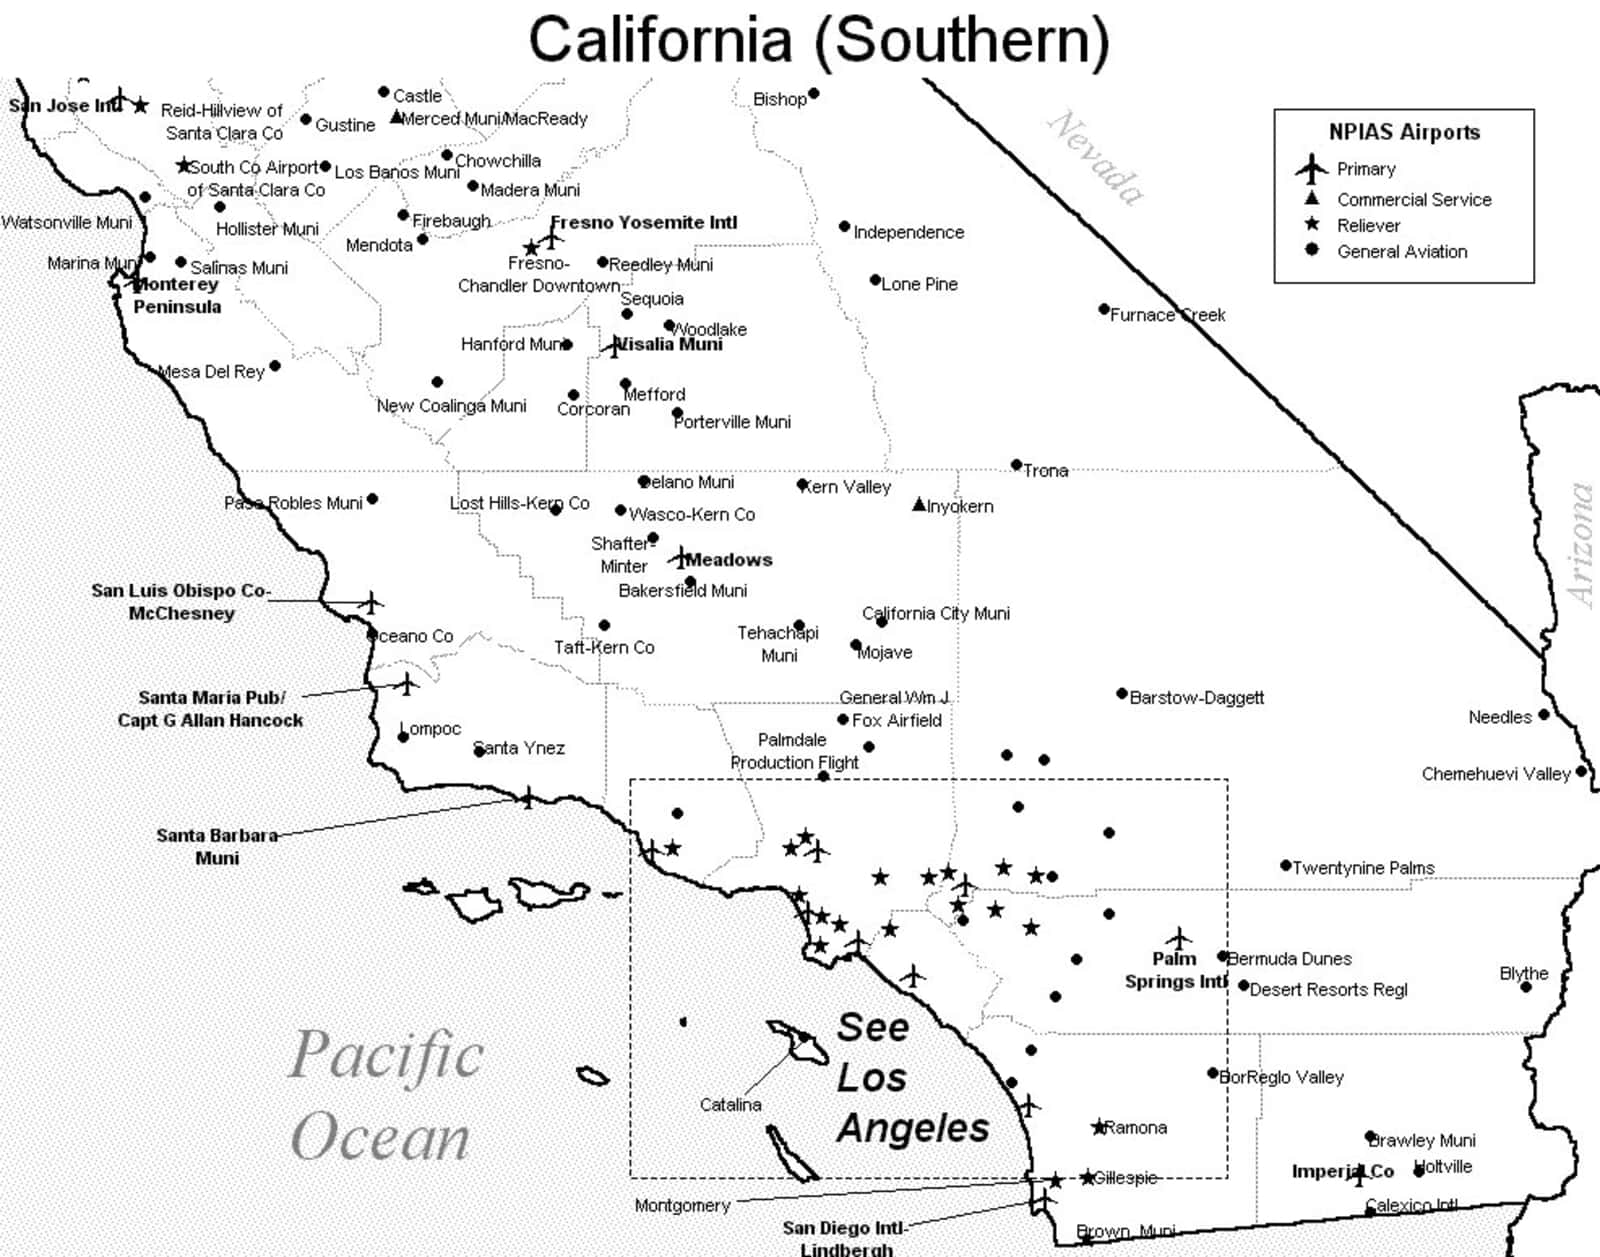 map of california with airports Southern California Airport Map Southern California Airports map of california with airports